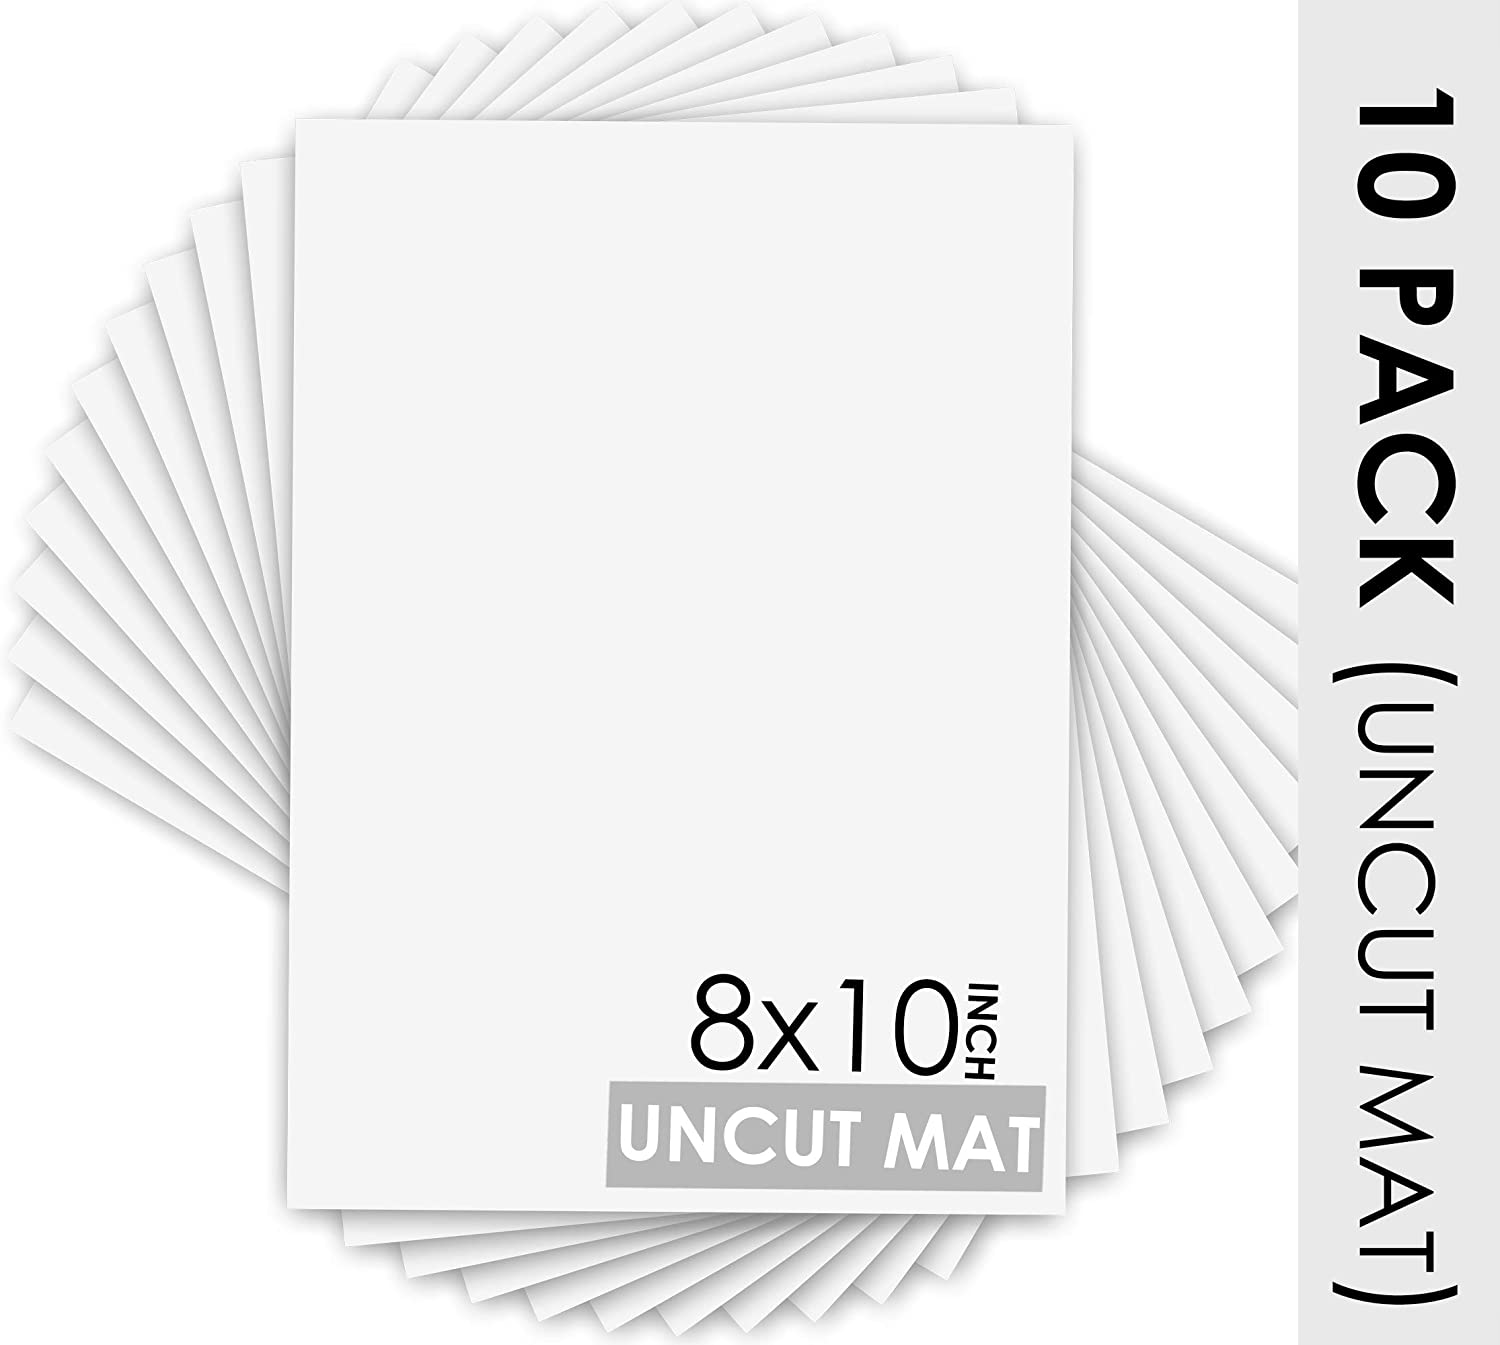 Acid Free for Pictures Photos 5x7 Uncut White Color Mats Framing Great for DIY Projects or Unique Picture Sizes 4-ply Thickness Pack of 10 Mat Board Center White Core